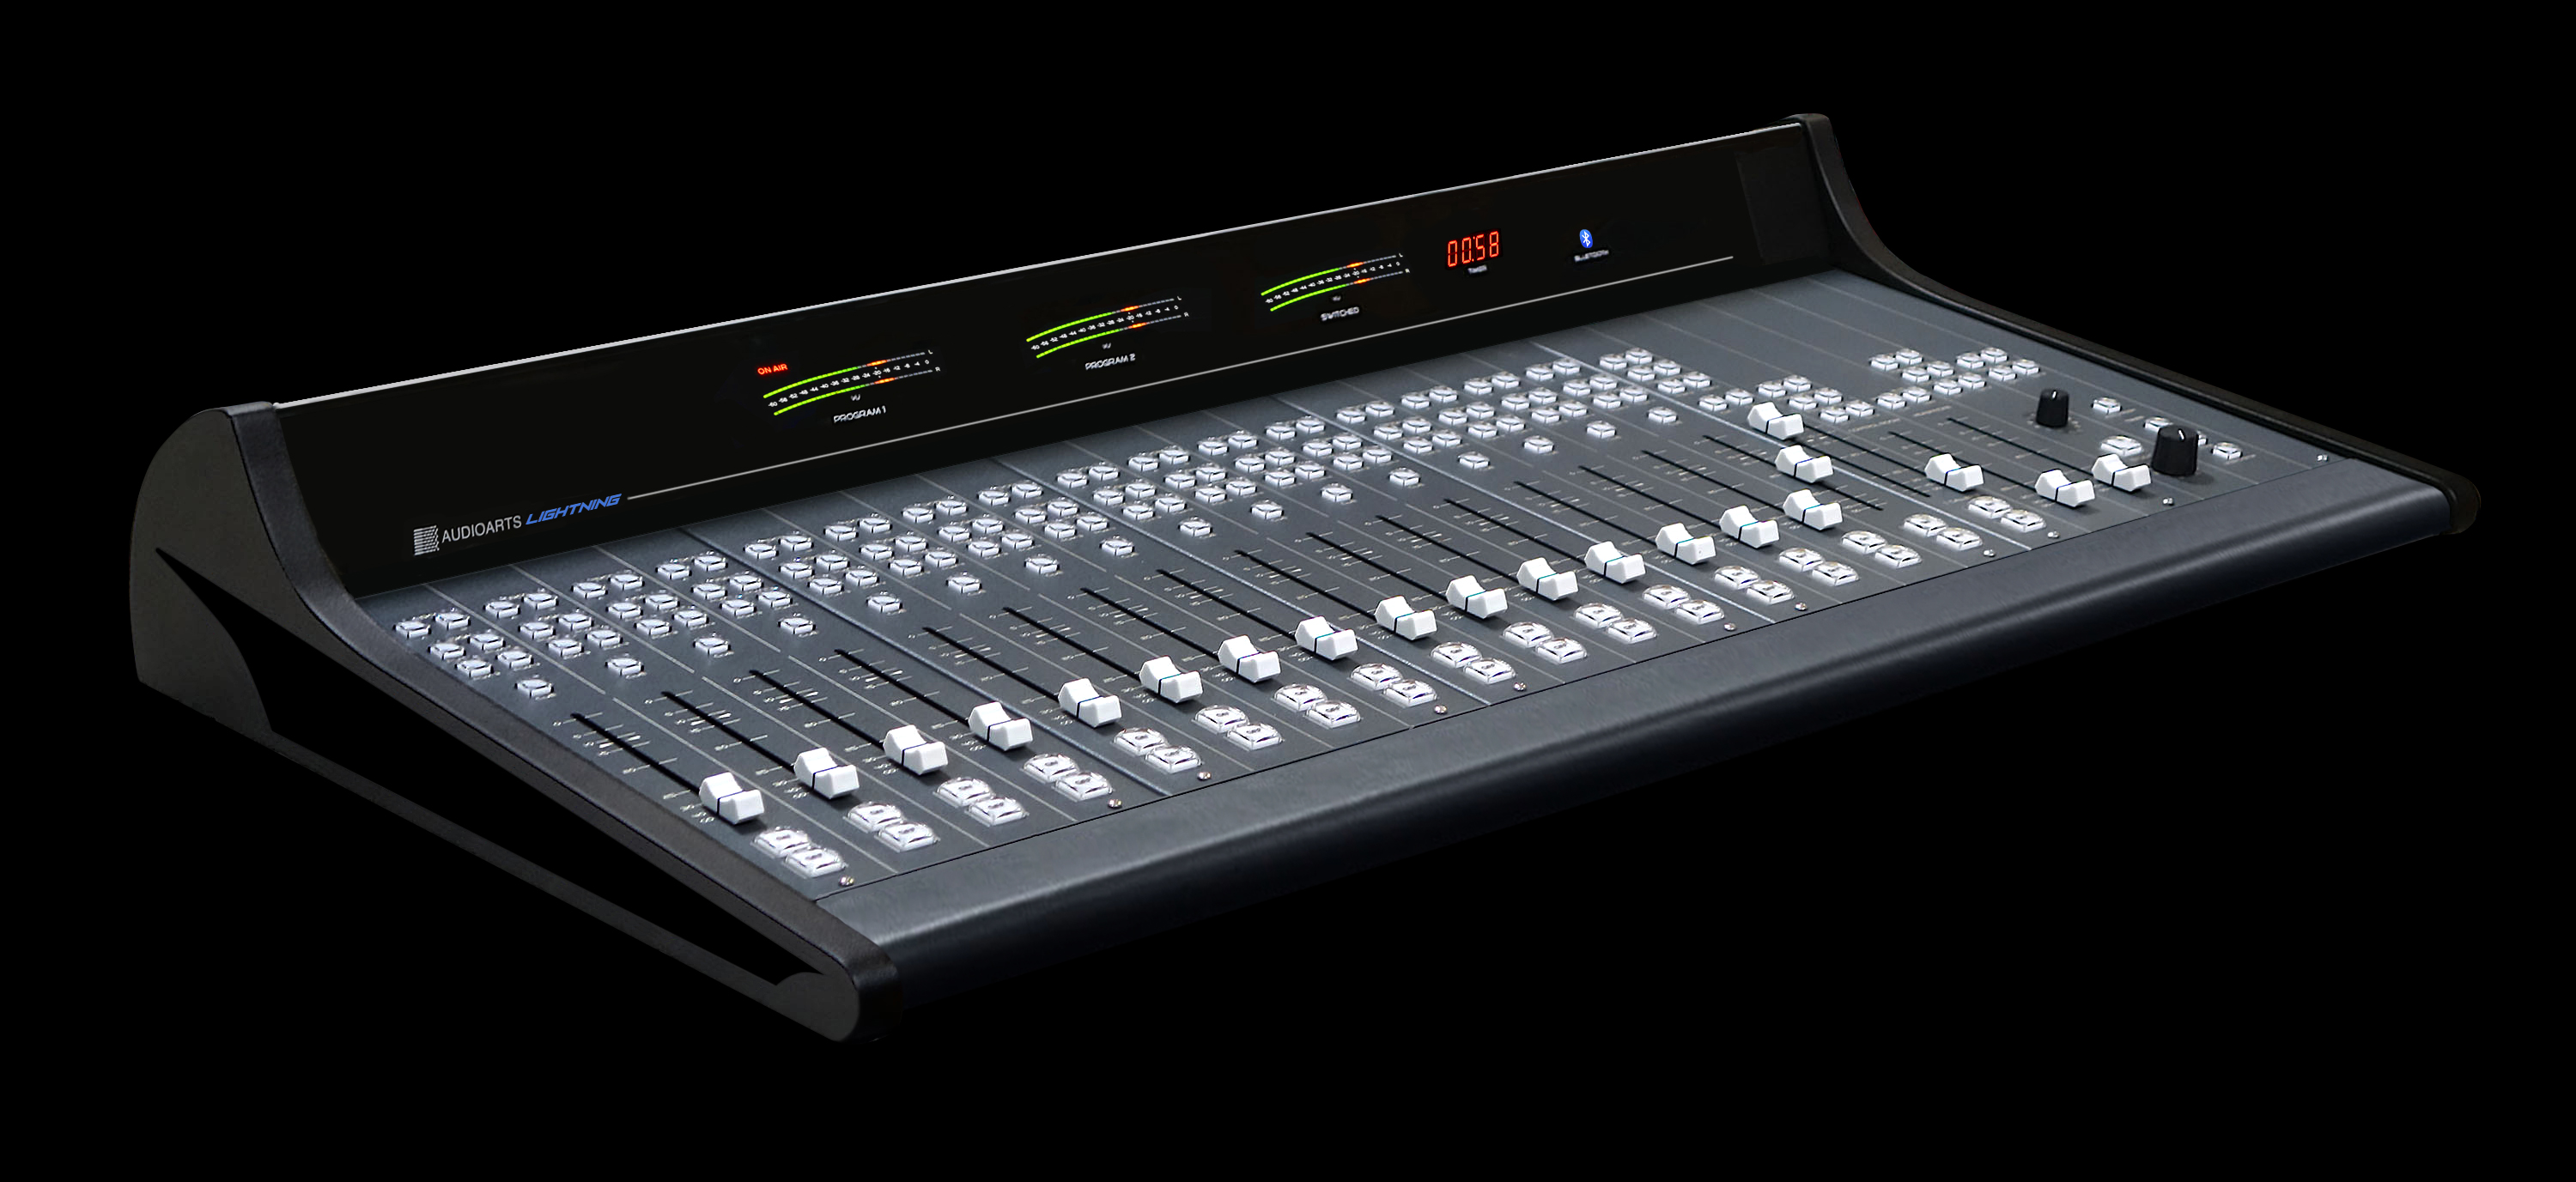 WHEATSTONE UNVEILS MIDSIZED AUDIOARTS CONSOLE AT NAB2018